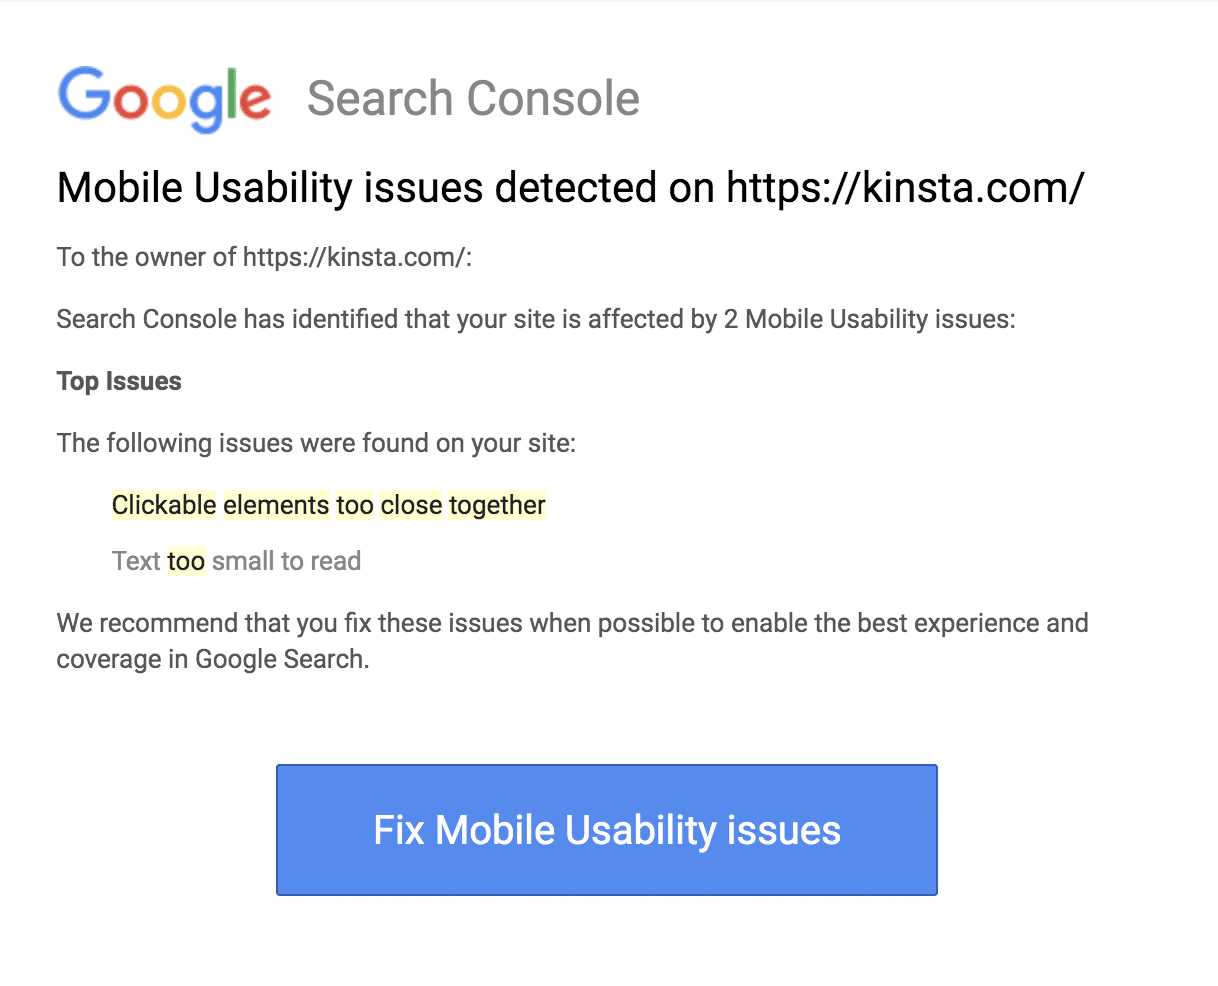 A mobile usability issues report from Google Search Console.